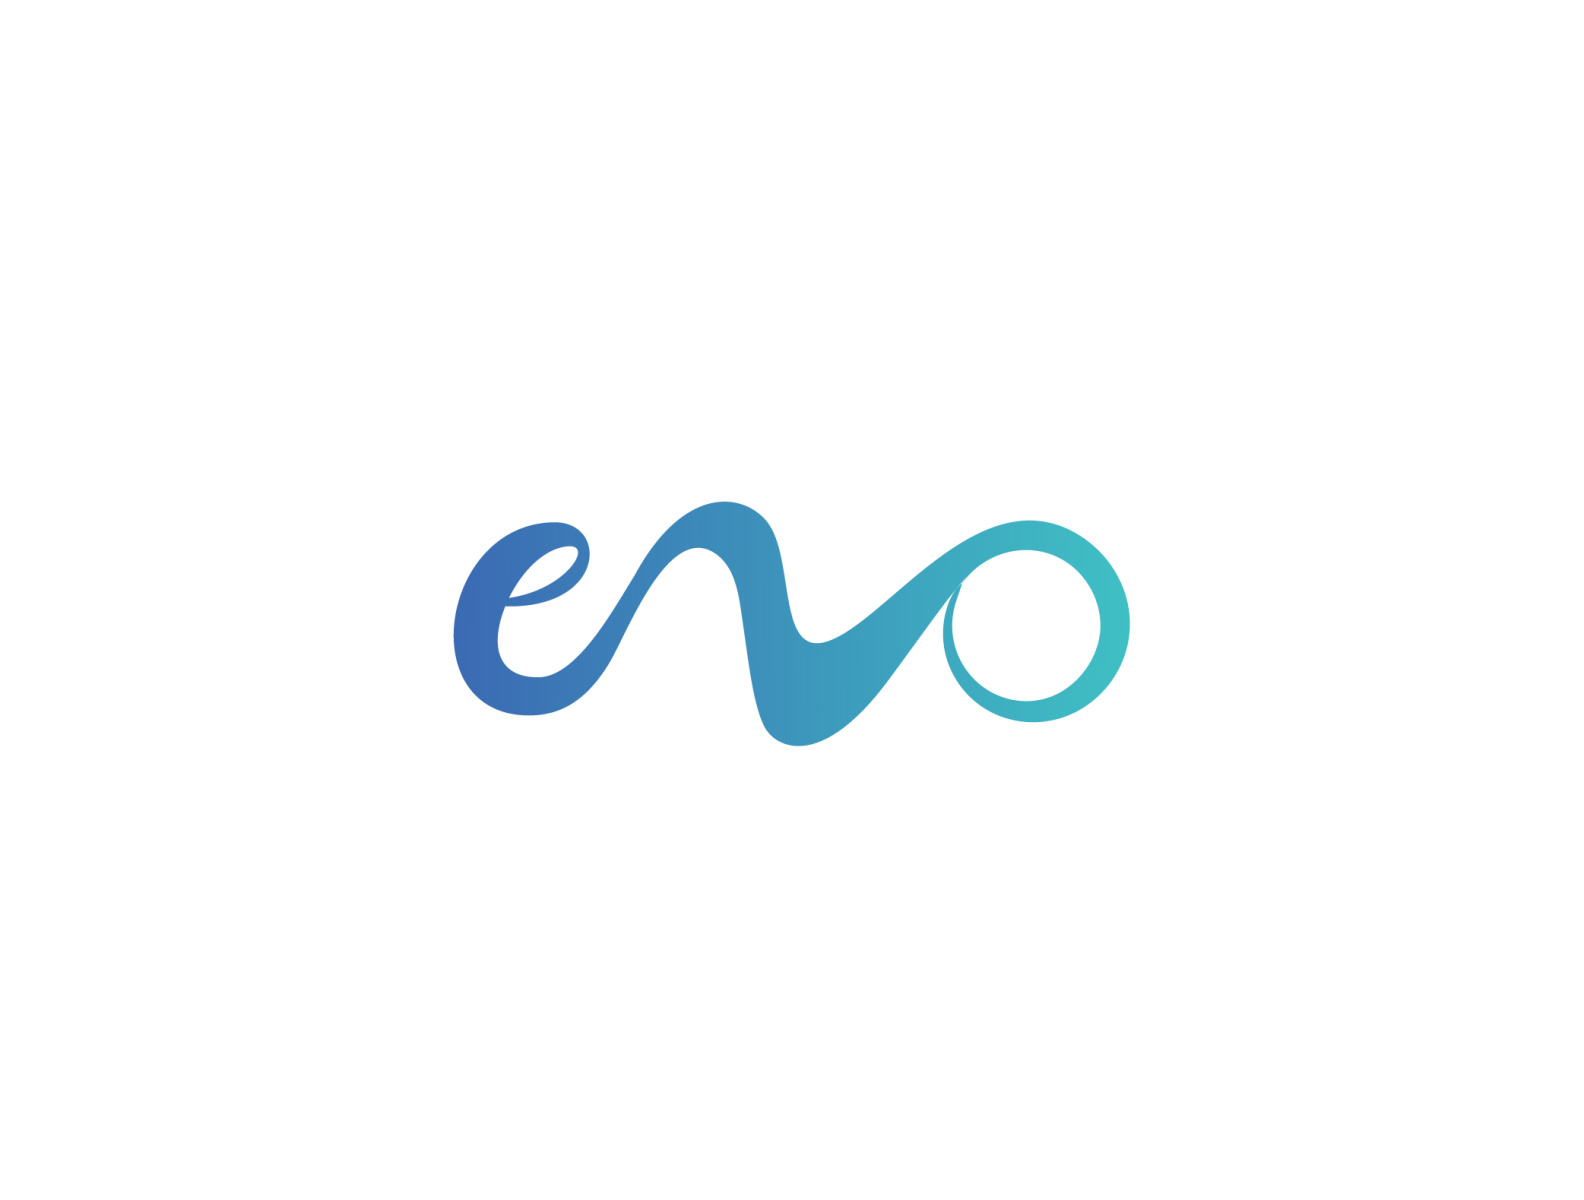 EVO logo by Trims Design on Dribbble.